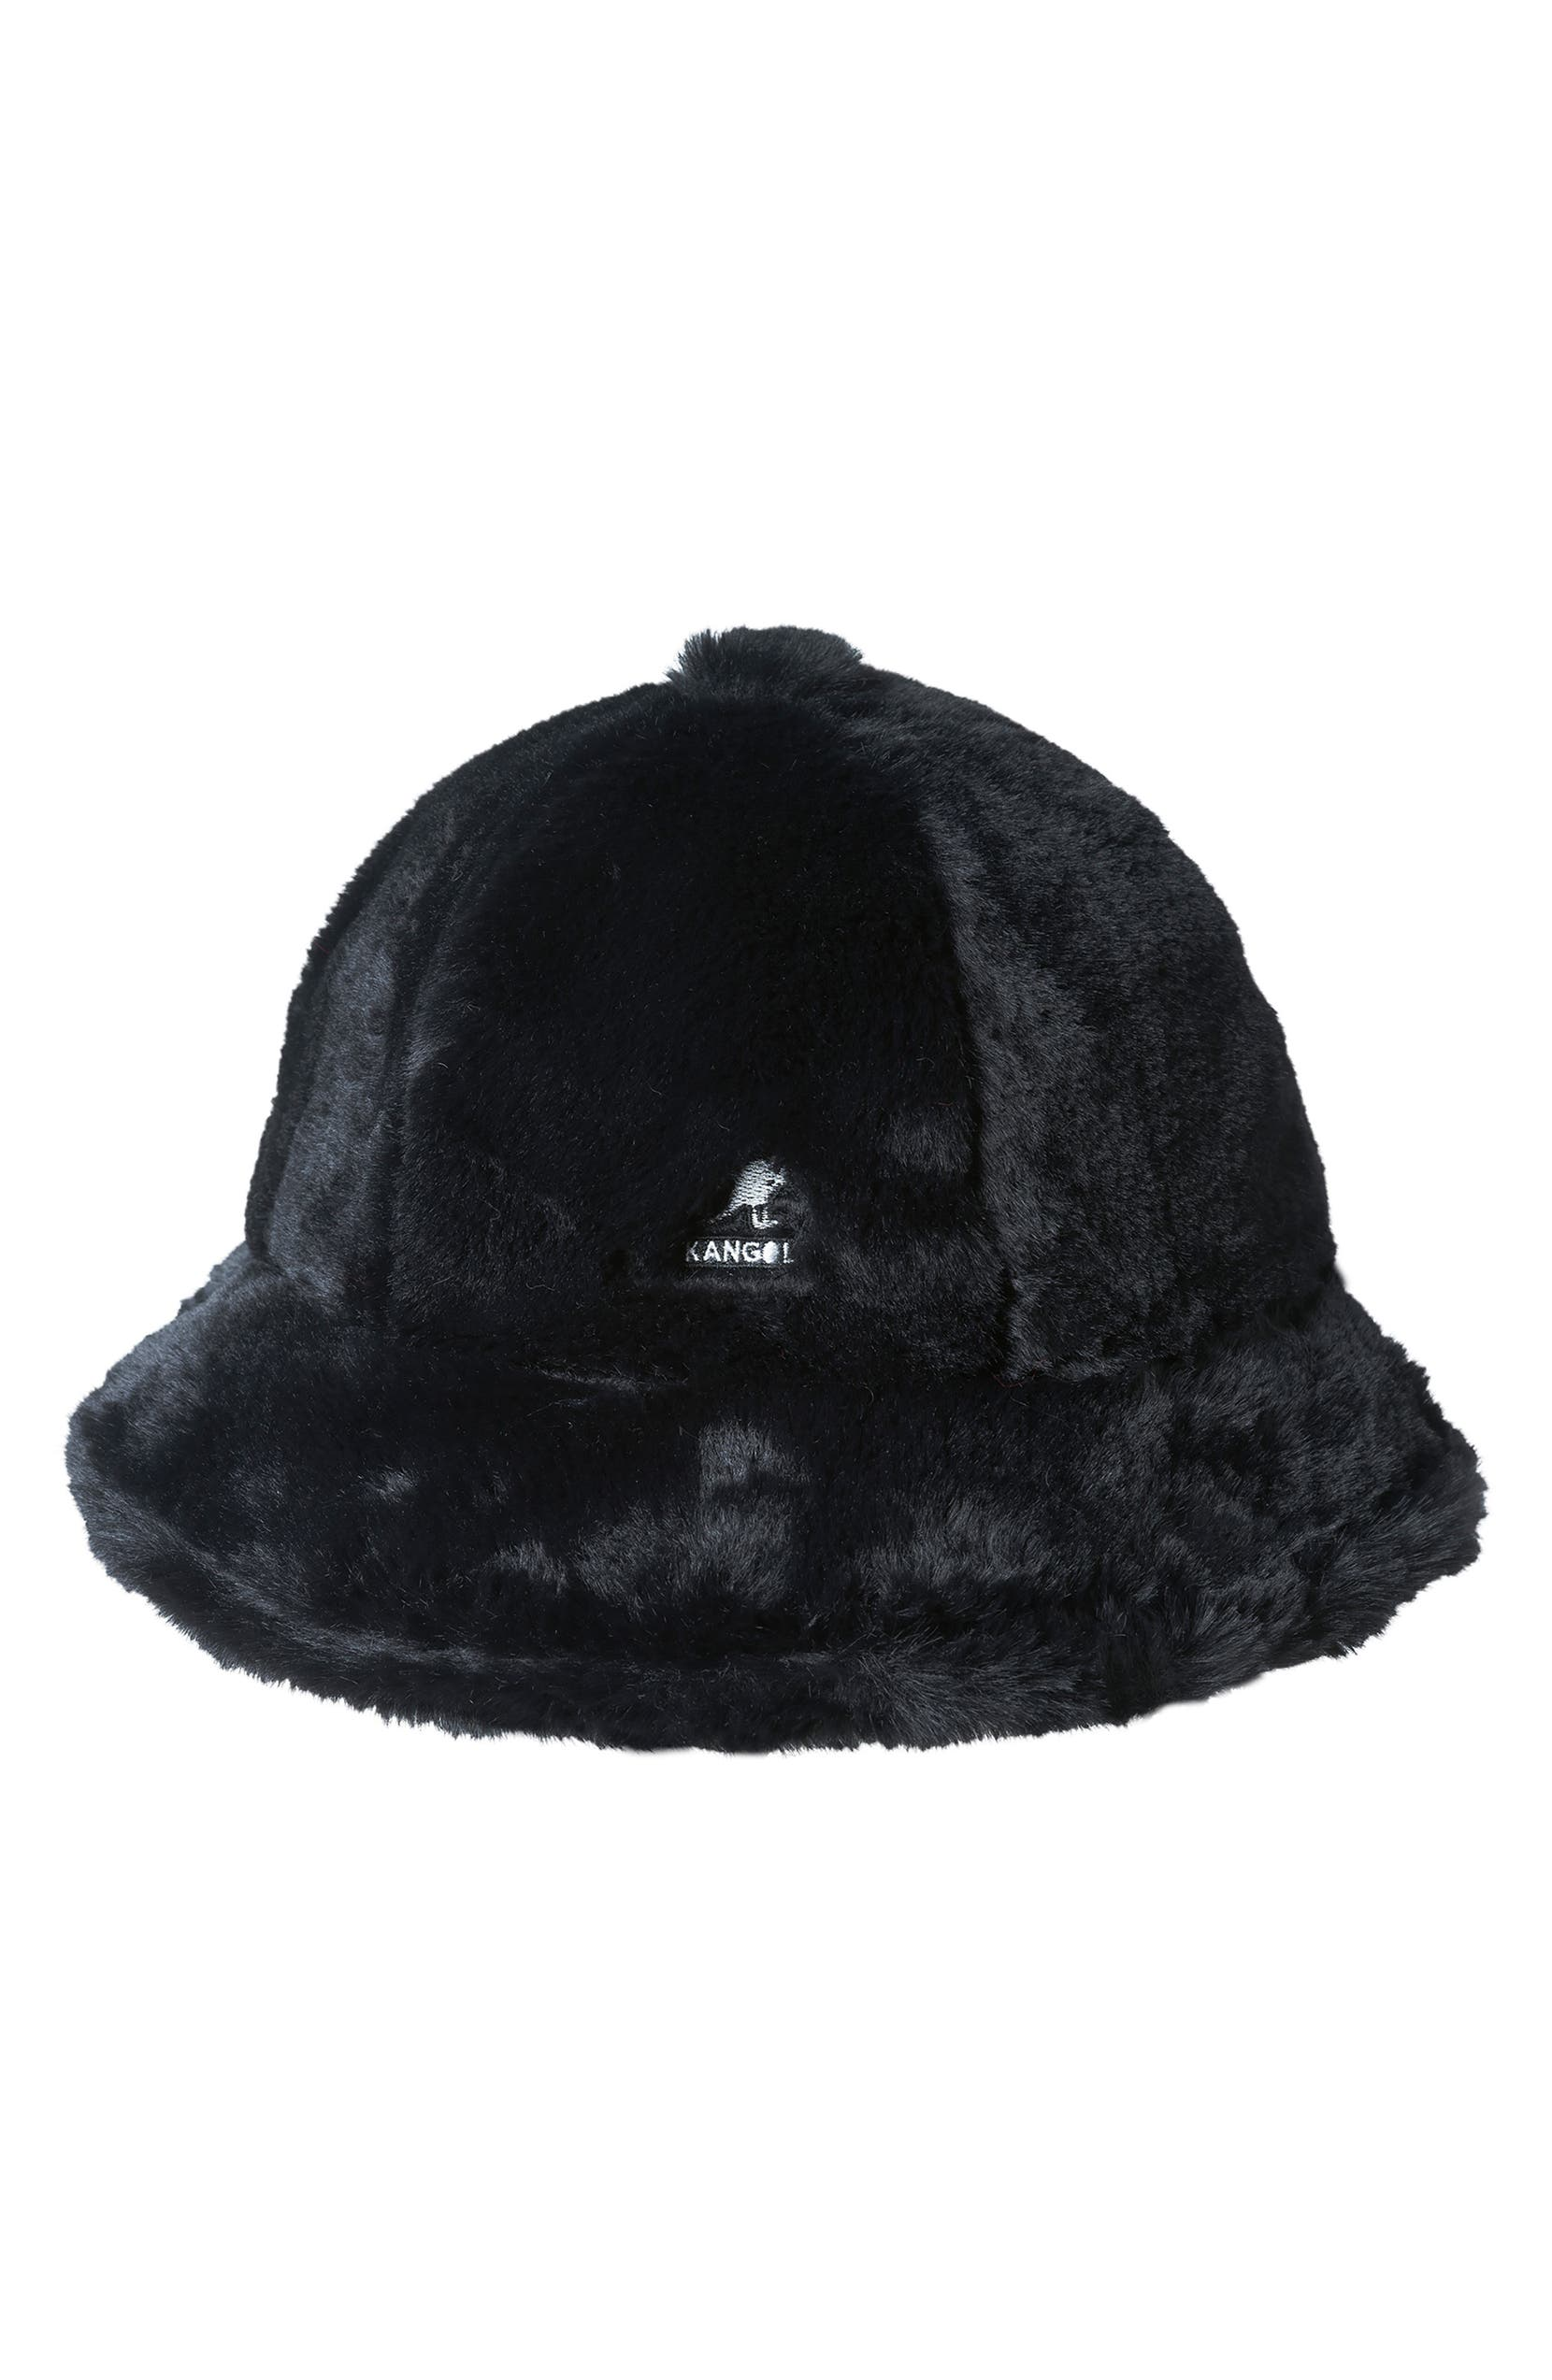 Kangol Faux Fur Casual Bucket Hat  0ee89a983476